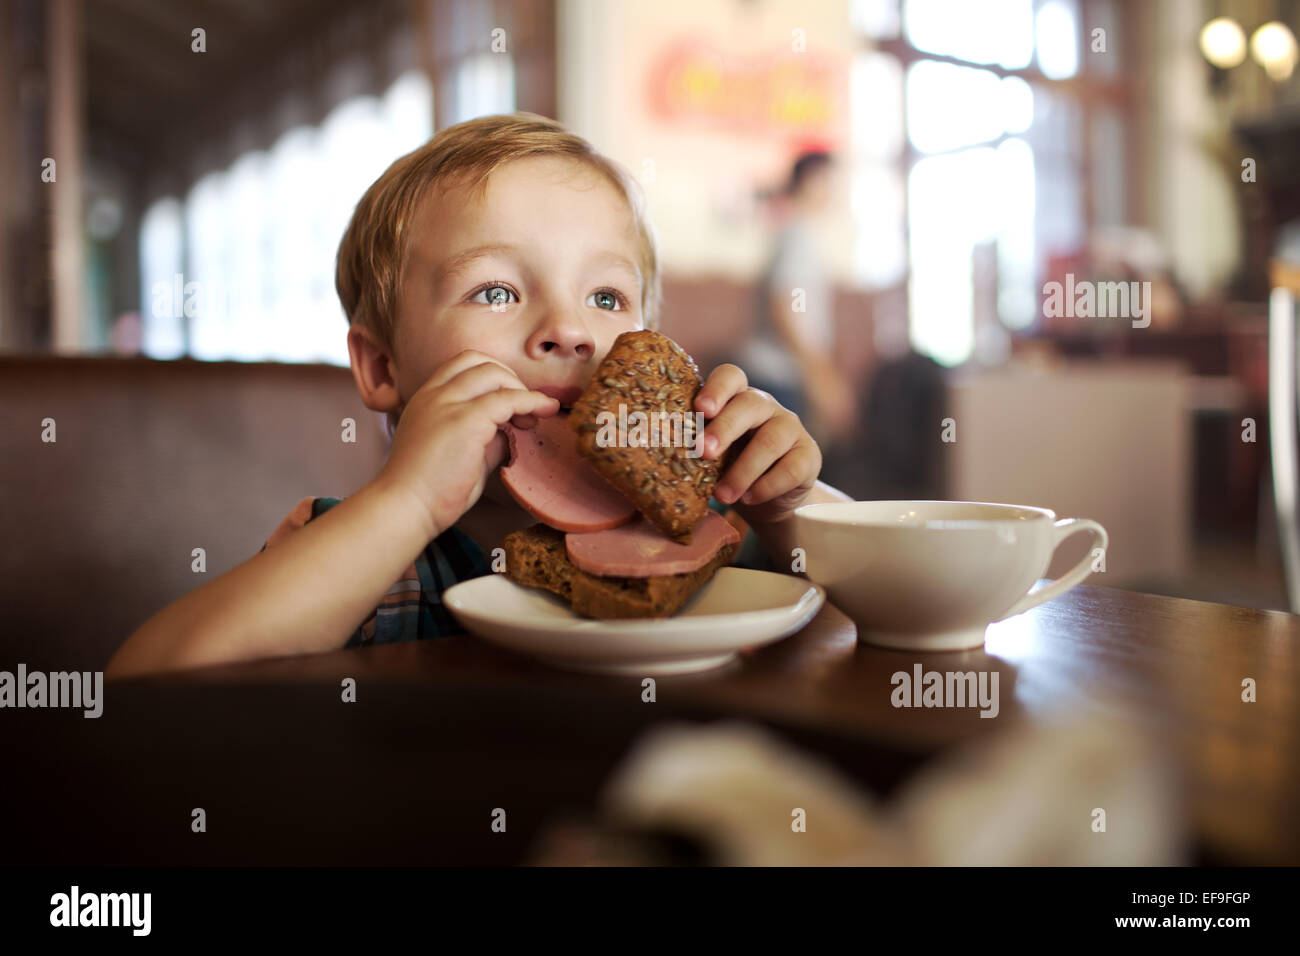 Little child having lunch with sandwich and tea in cafe - Stock Image